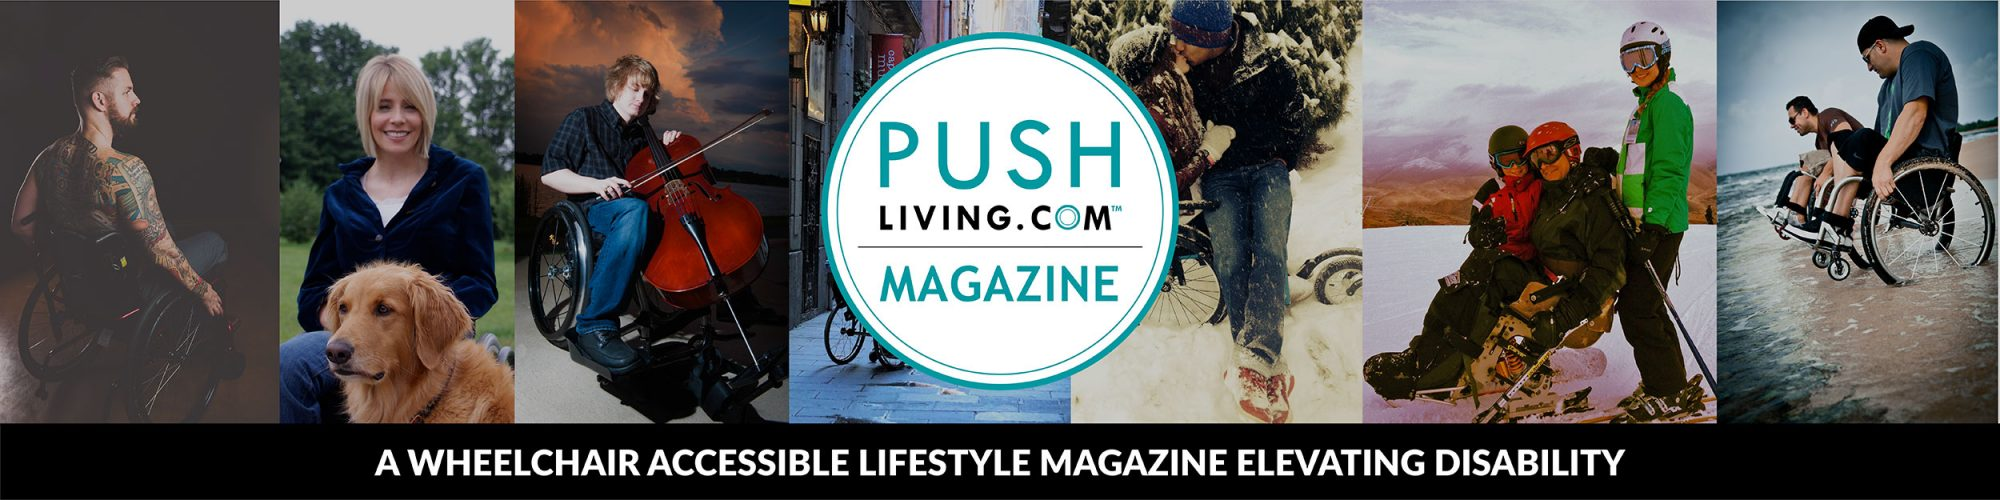 Pushliving Magazine - A wheelchair accessible lifestyle magazine elevating disability